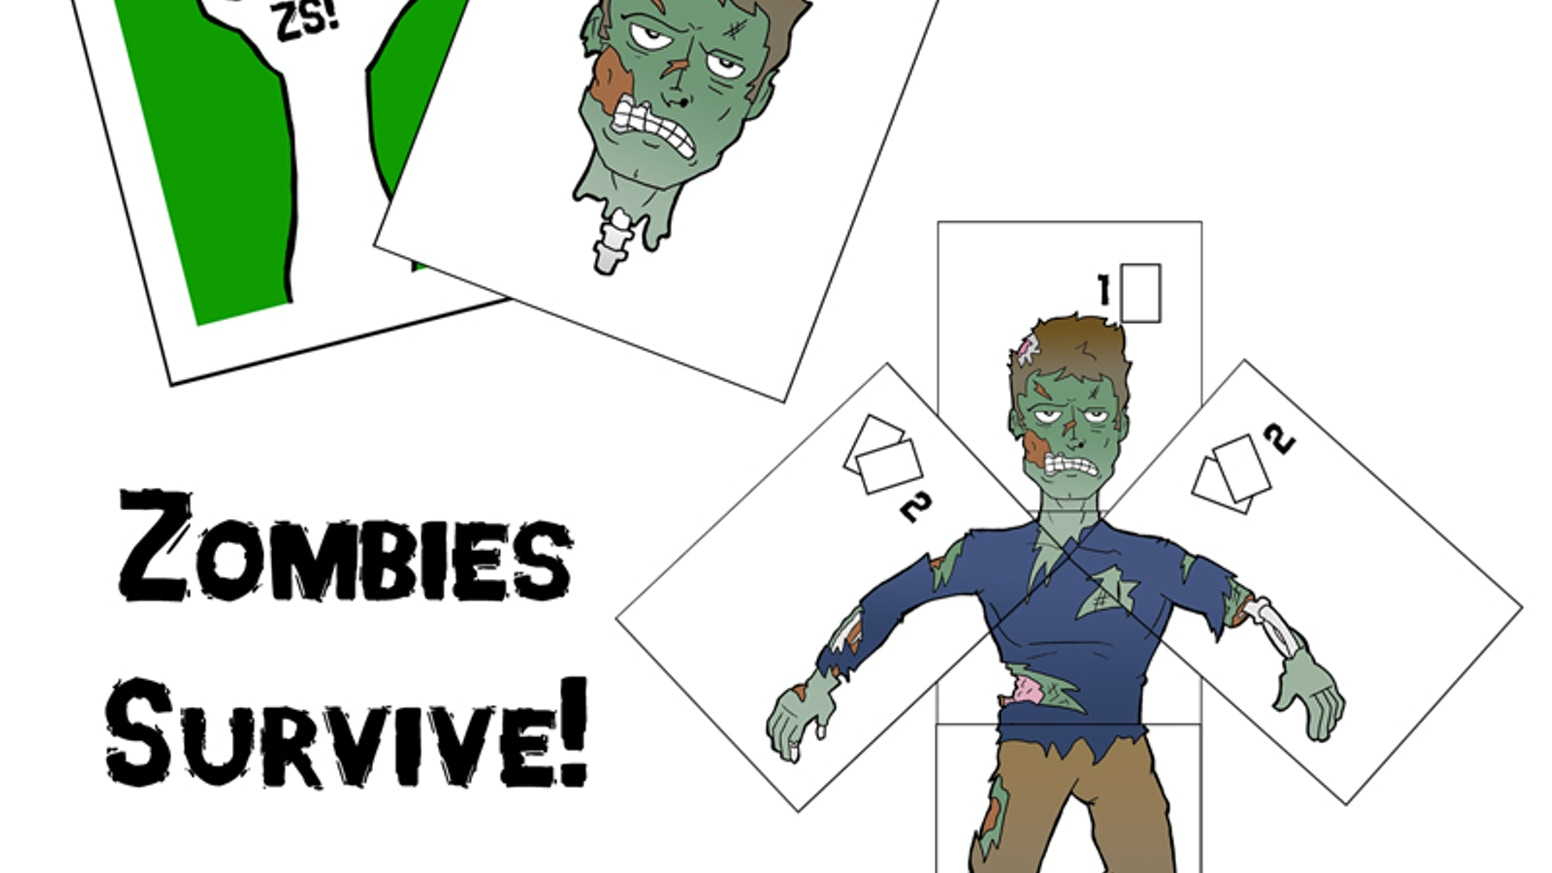 Play as a zombie trying to survive against angry citizens in this fun-for-all-ages card game. Simple, engaging, and fast-paced!